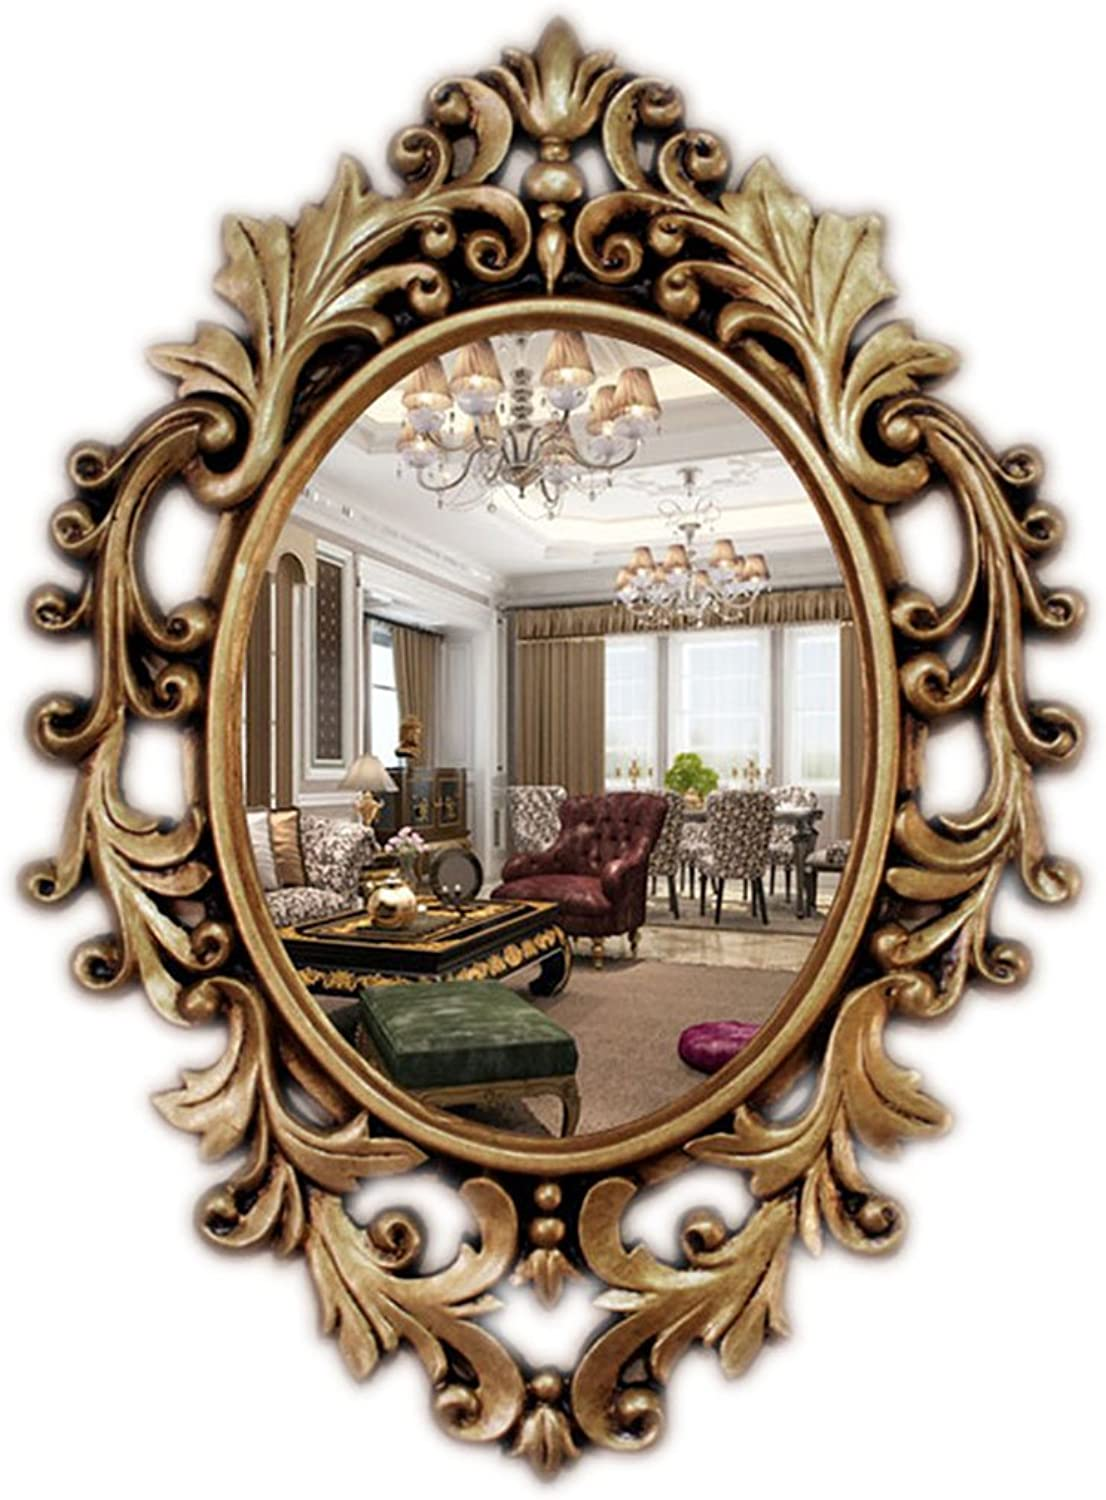 Greawei@ Bathroom Mirror European Antique Old Wall Hanging Decorative Mirror Makeup Mirror Ladies Dressing Mirror Home6748cm Simple and Elegant (color   Ancient gold)